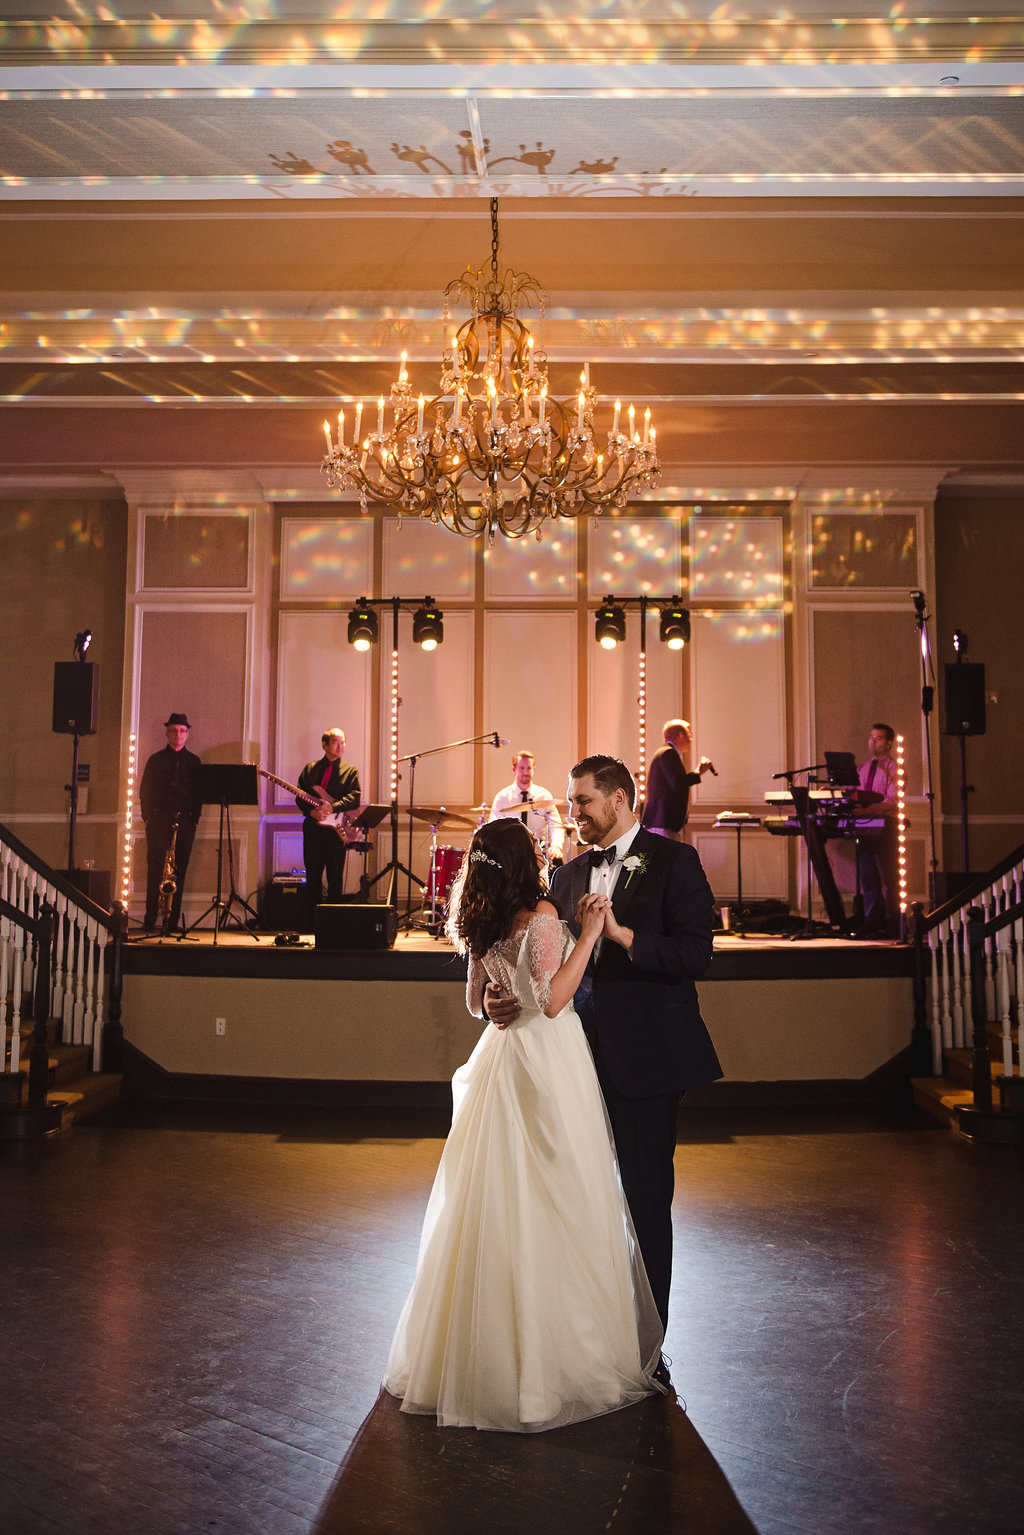 Hotel Ballroom Wedding Reception First Dance With Gobo Ceiling